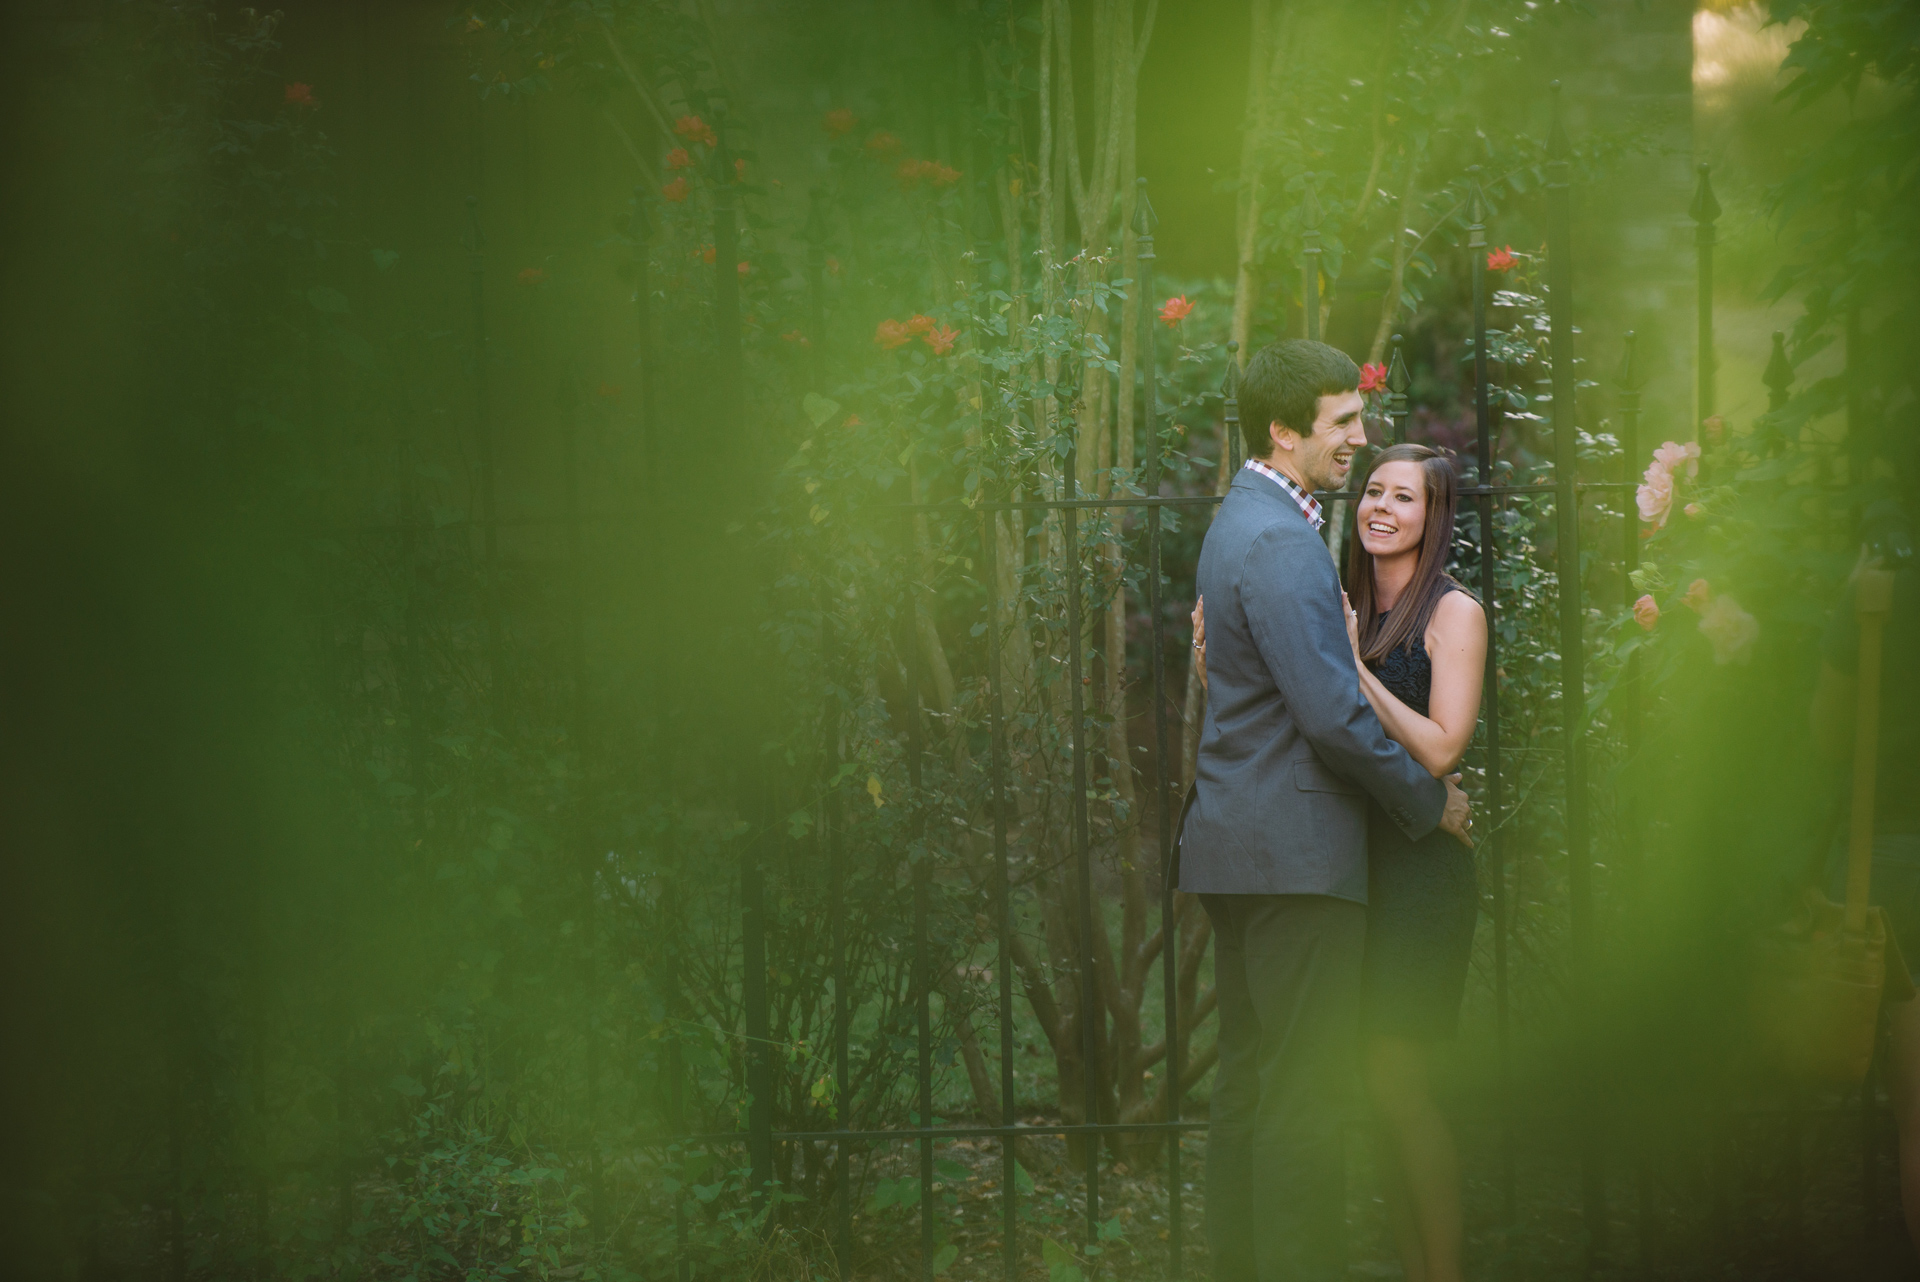 georgia-cameron-engagement-session-river-columbia-sc-photography